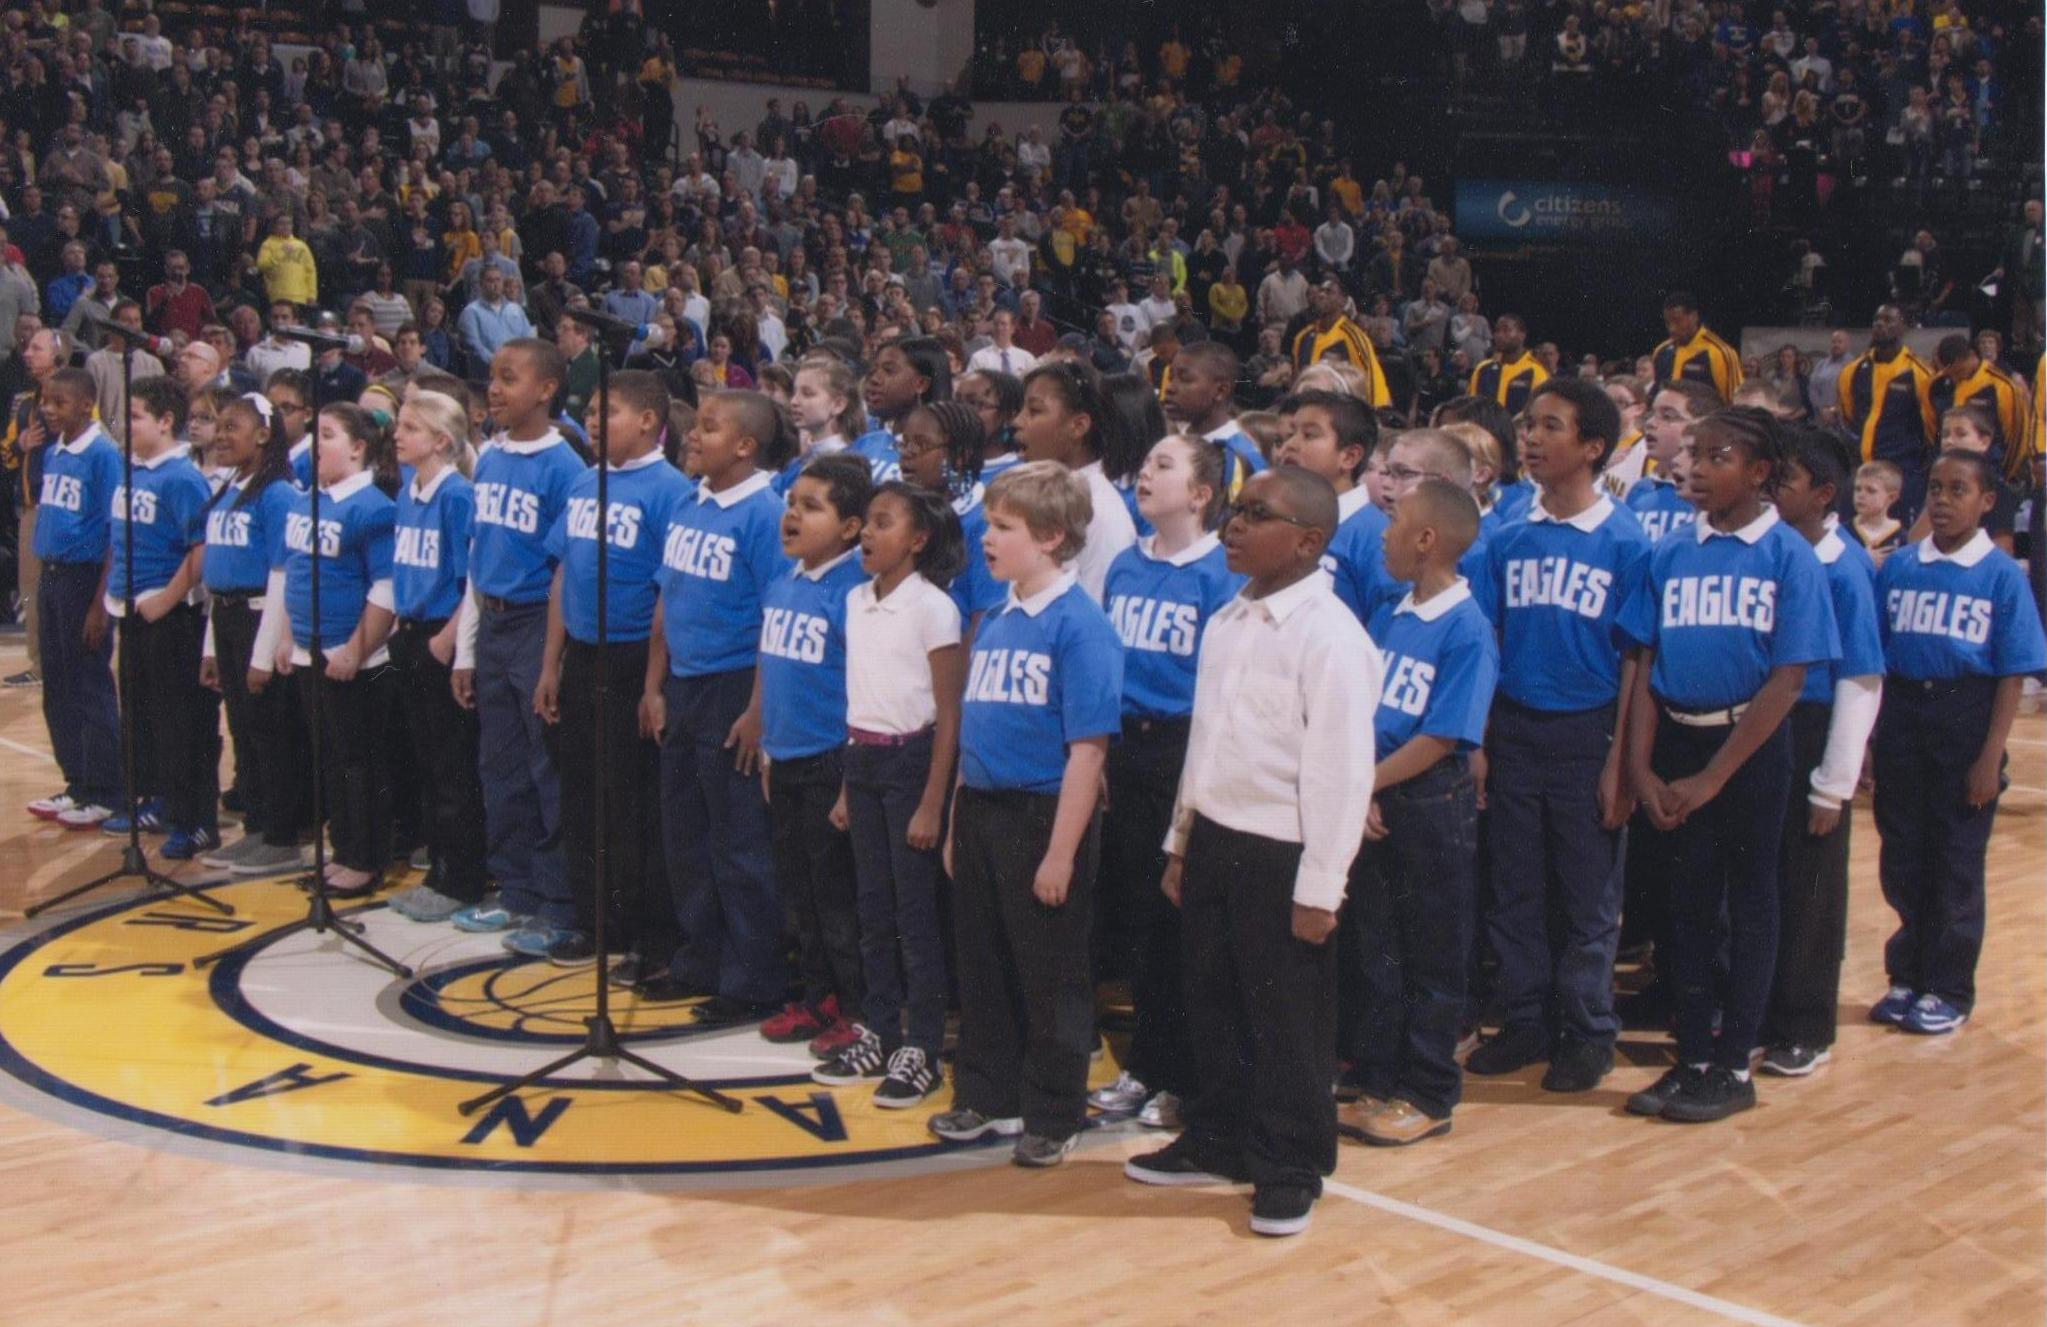 Singing Eagles performing for the Pacers